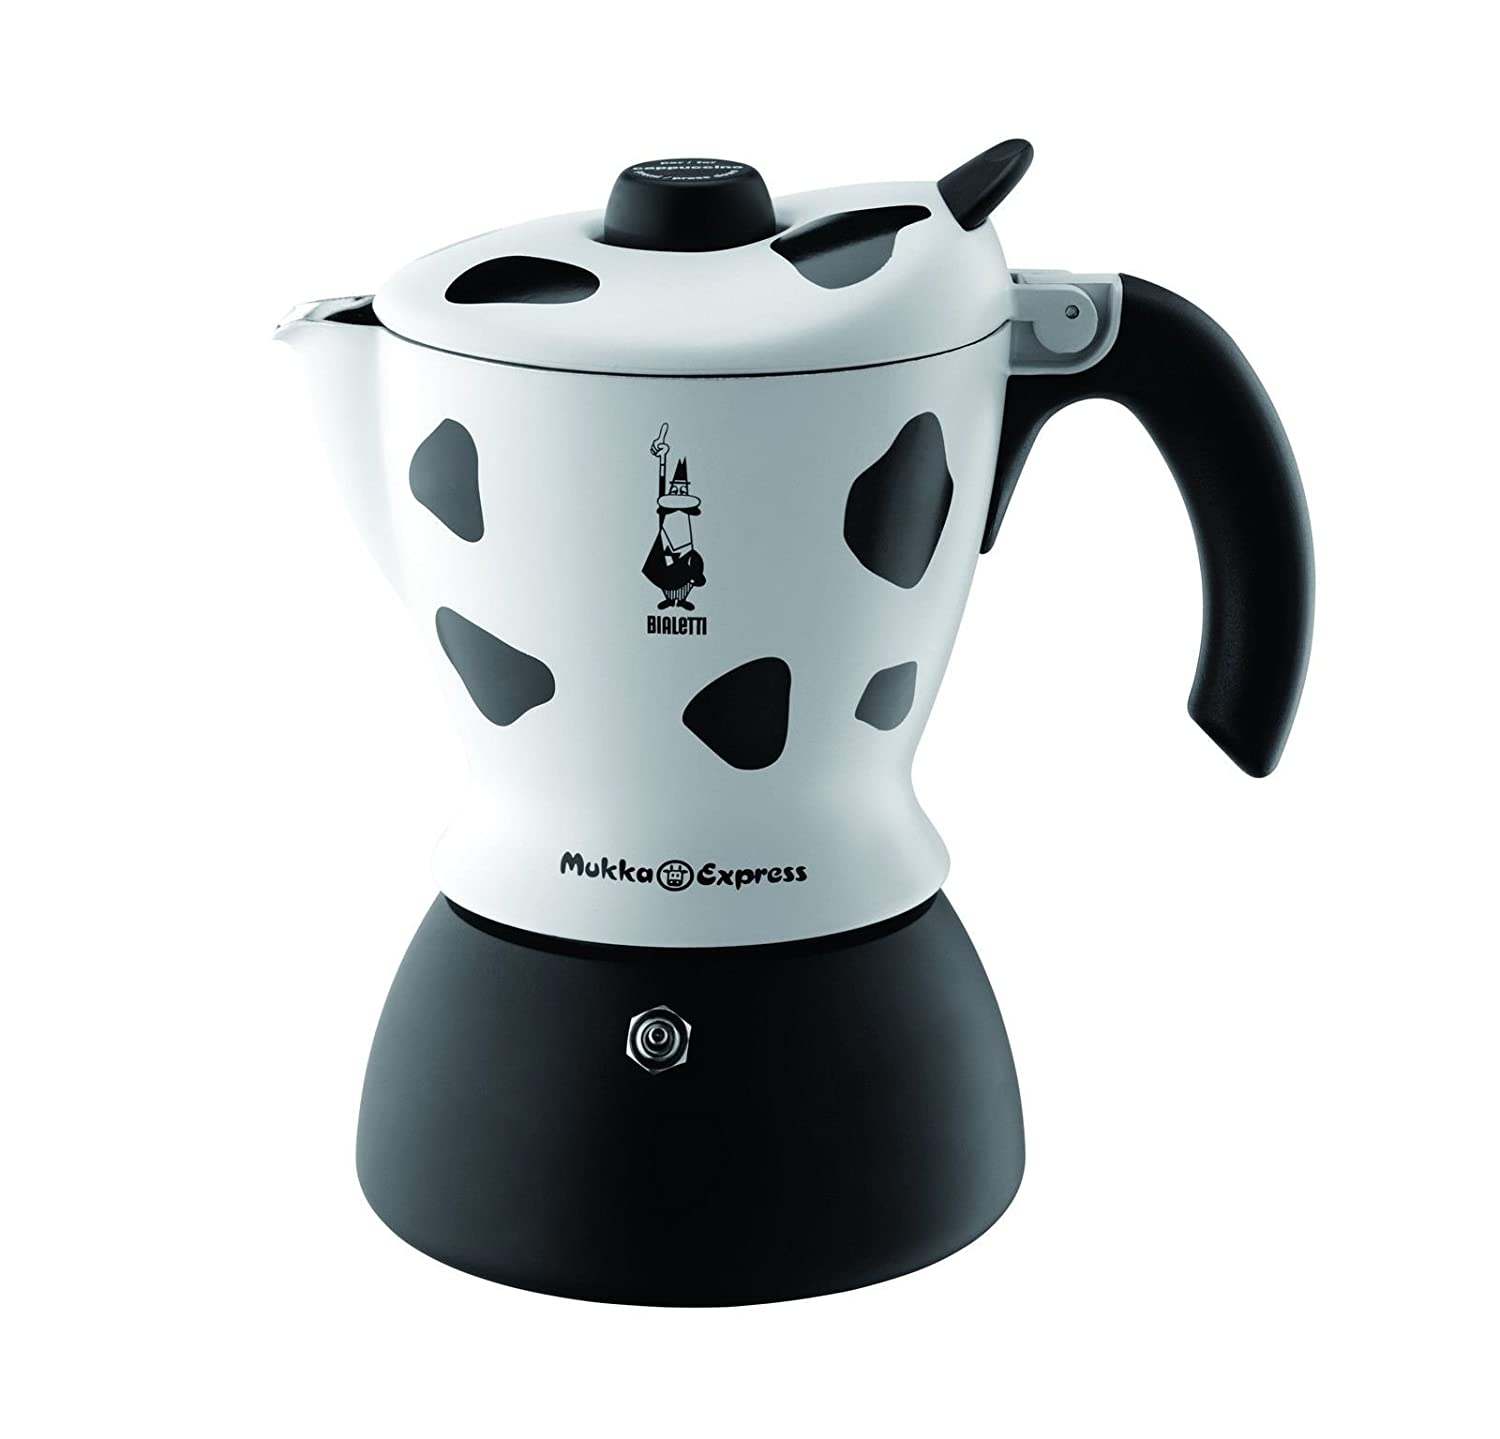 Bialetti Mukka Express - Stove Top Cappuccino/Latte Coffee Maker - With Built-In Milk Frother - 2 Cup - Cow Print MukkaKuh